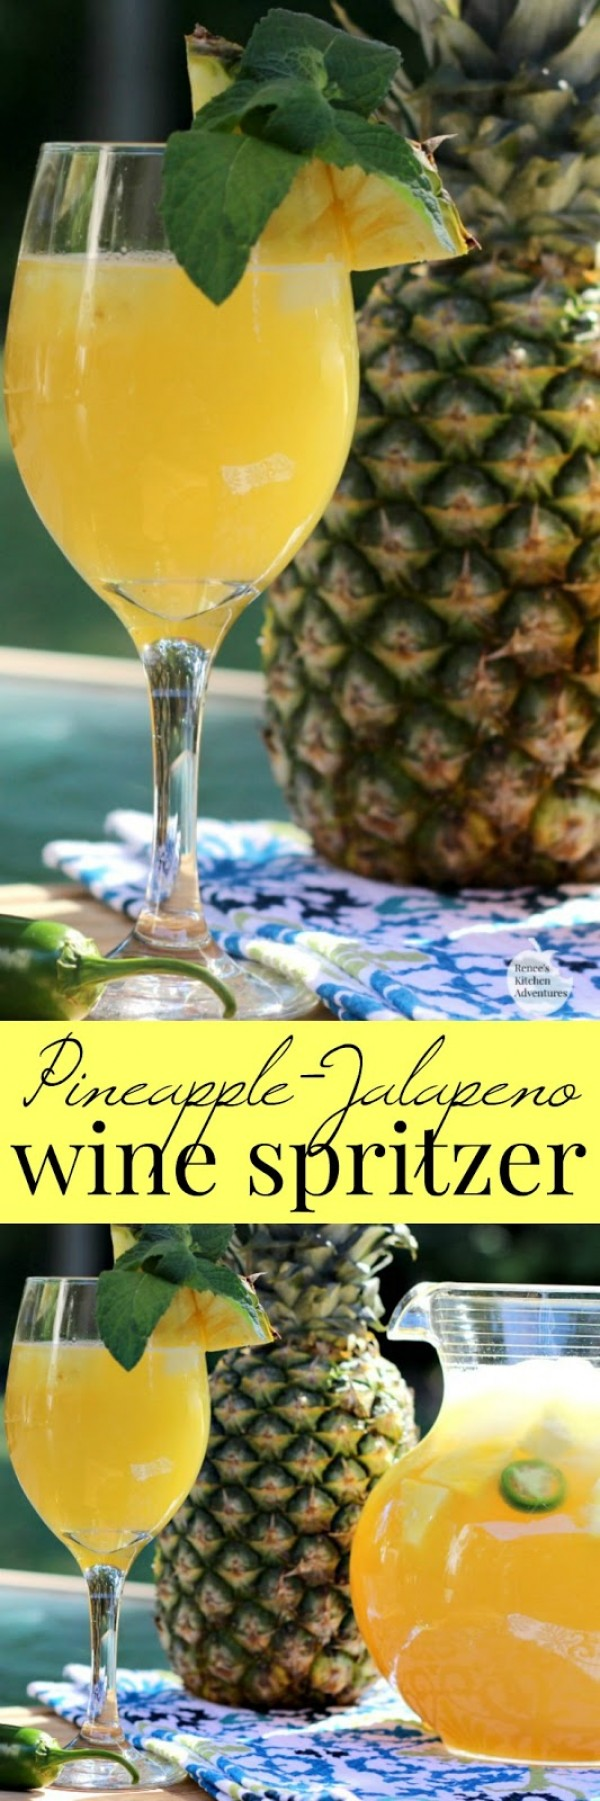 Get the recipe Pineapple-Jalapeno Wine Spritzer @recipes_to_go